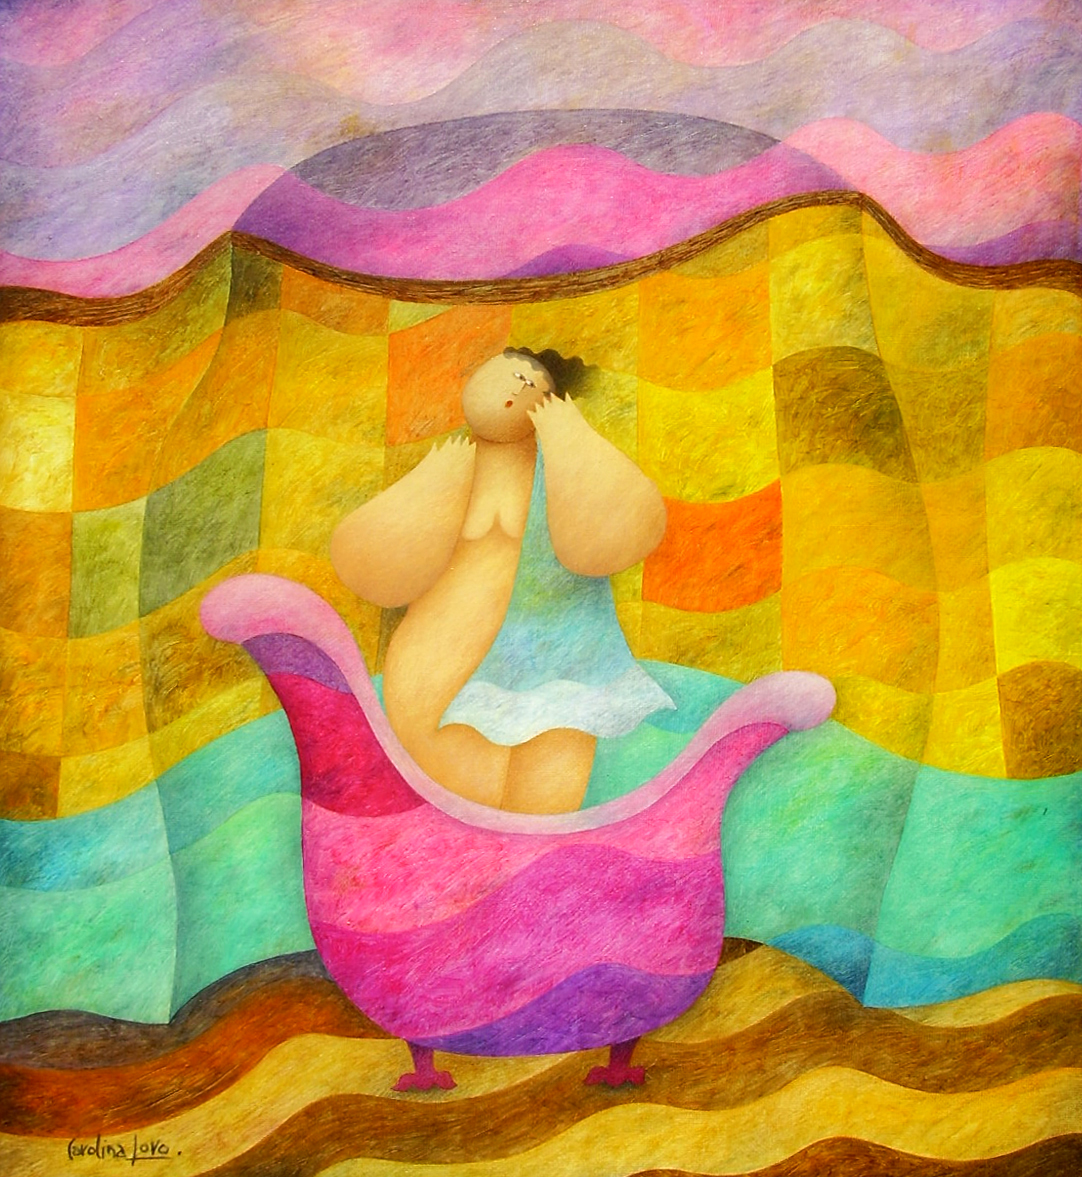 La bañista (Bather)